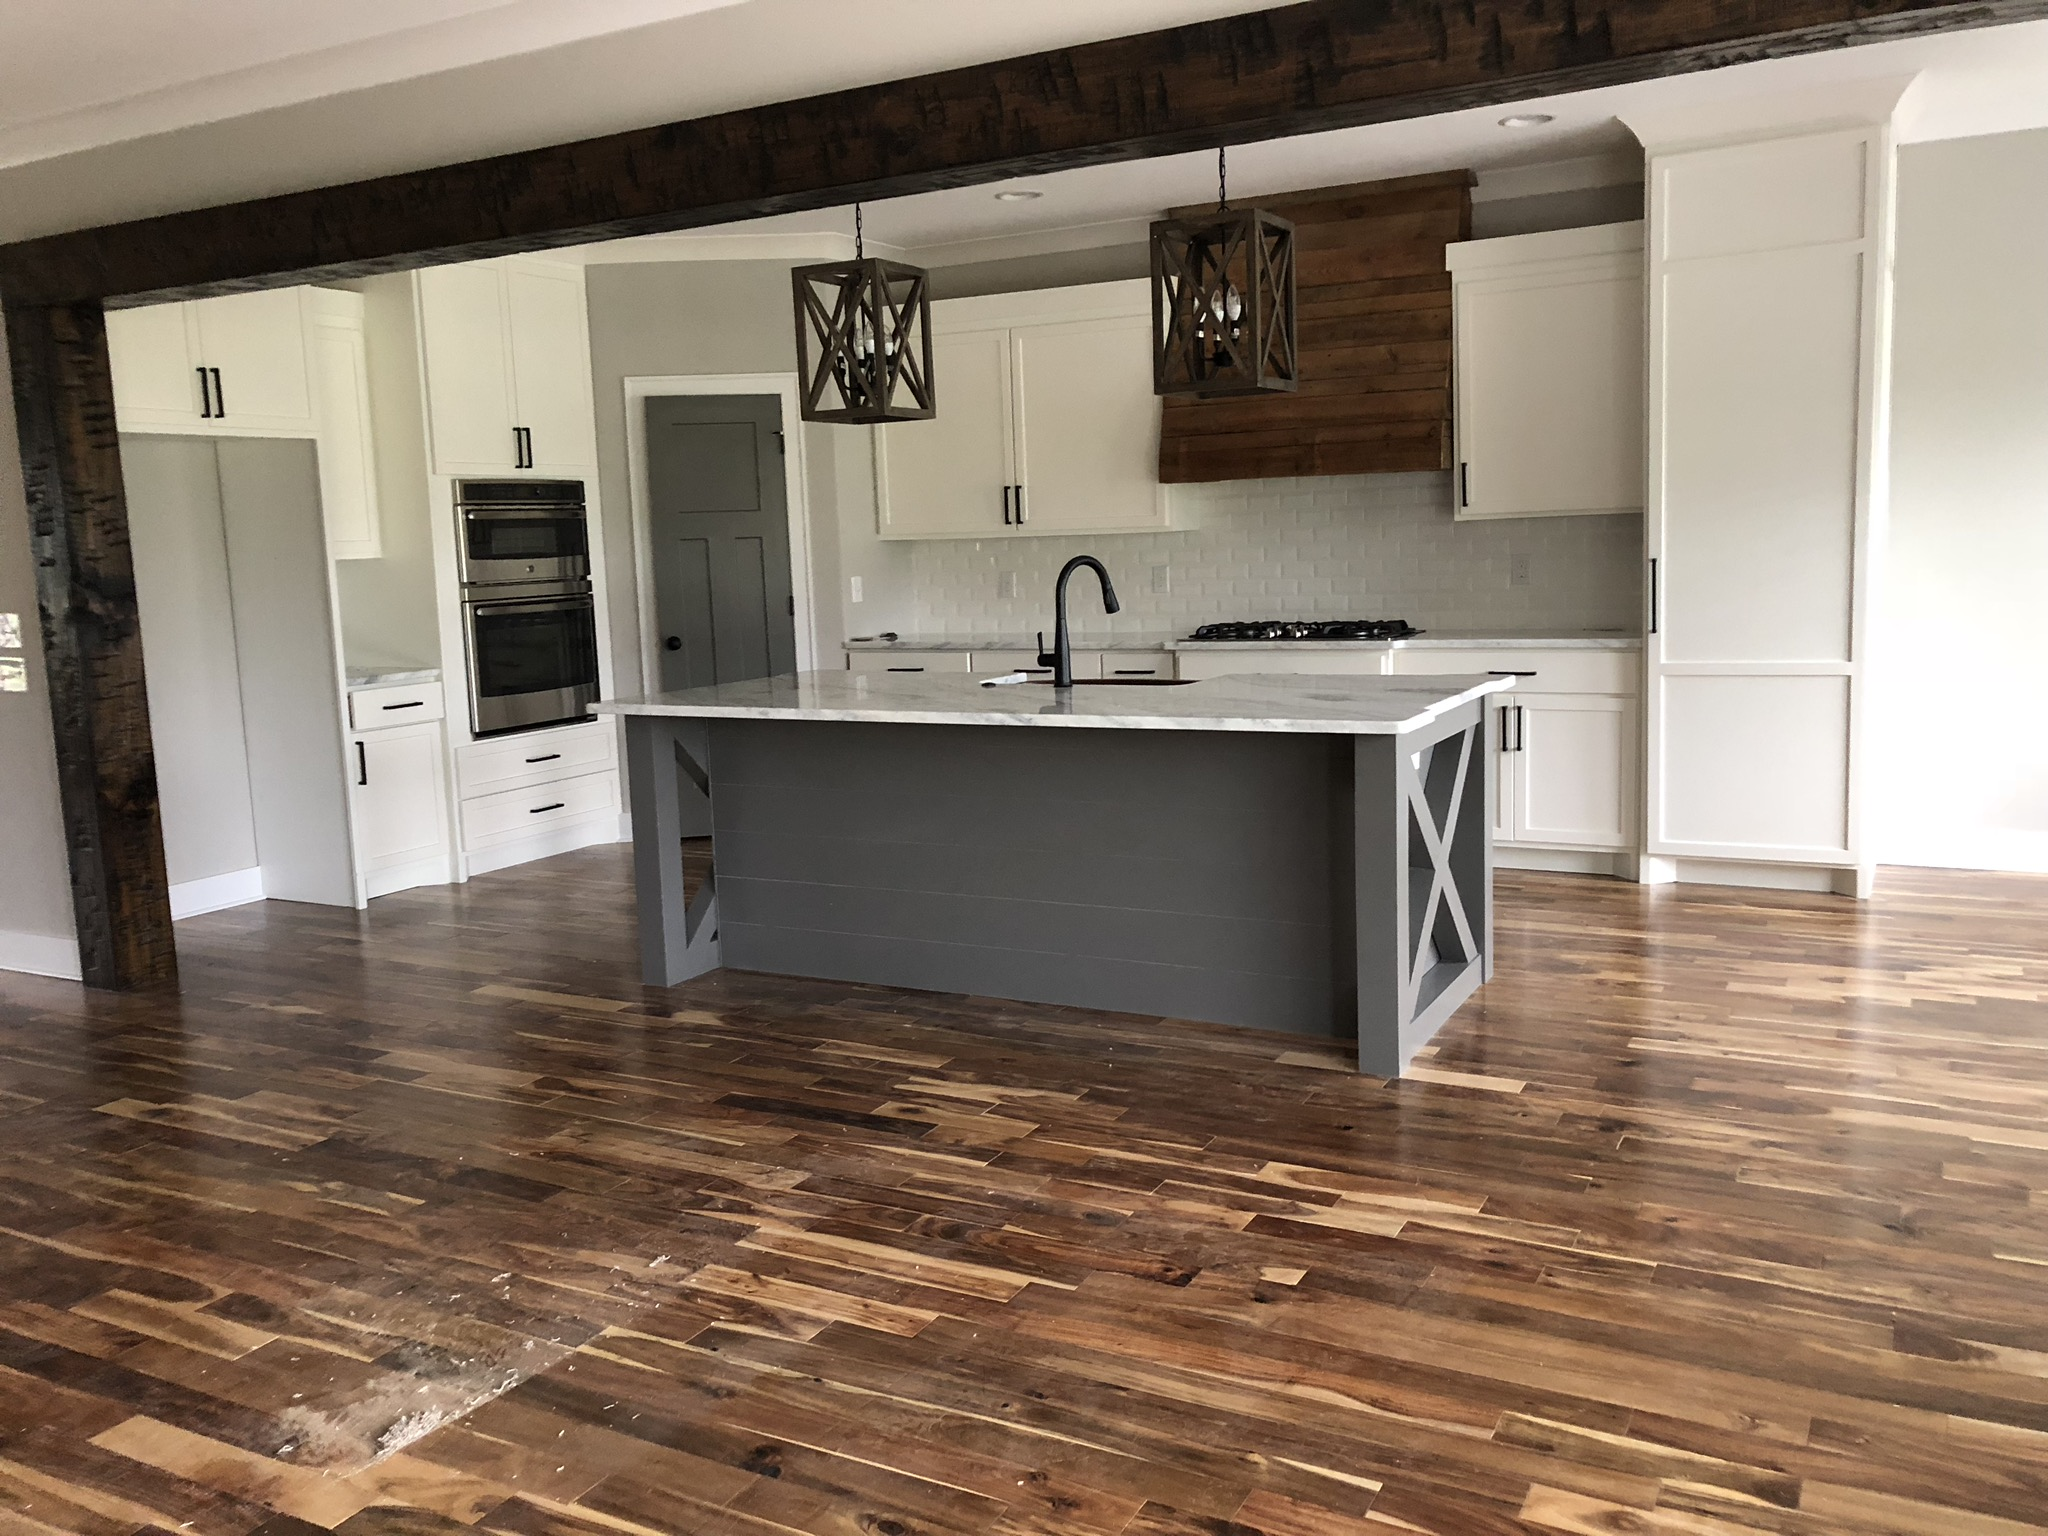 *Spoiler Alert - This is a sneak peak photo of a custom farmhouse kitchen we will be revealing on our blog very soon!